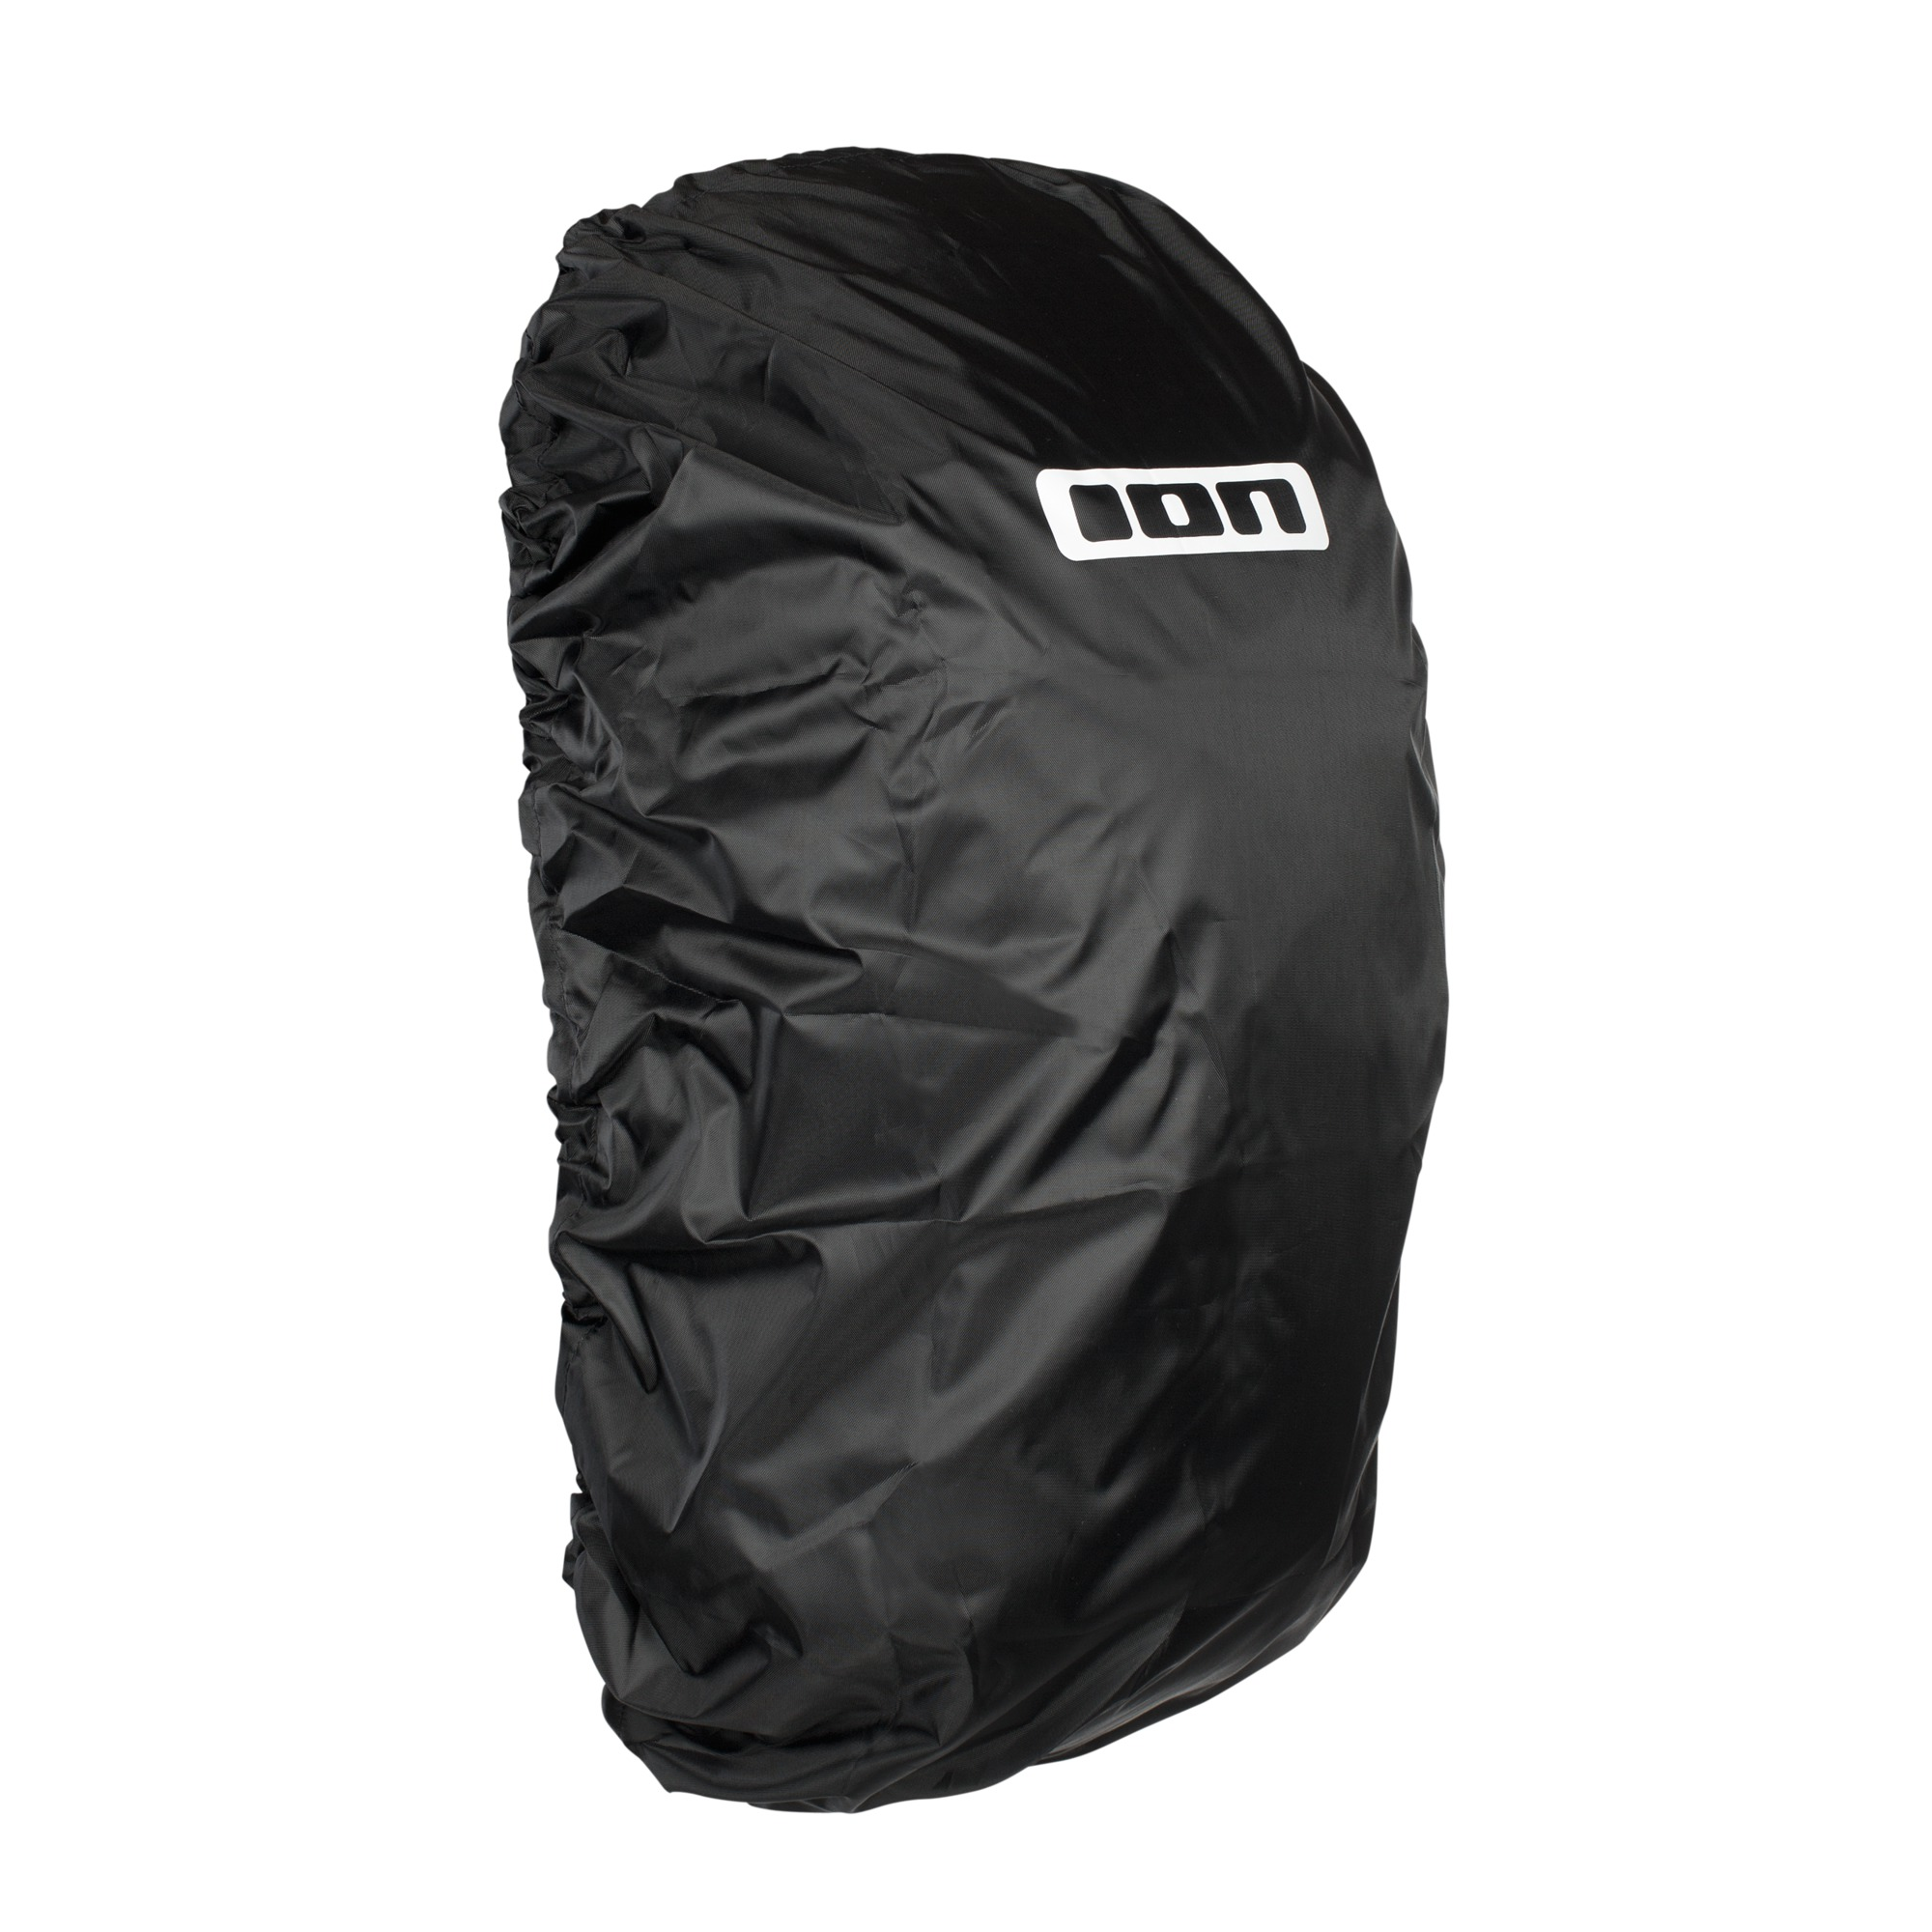 2314d35992a Backpacks - Protection - Hydration - Bikesports - ION